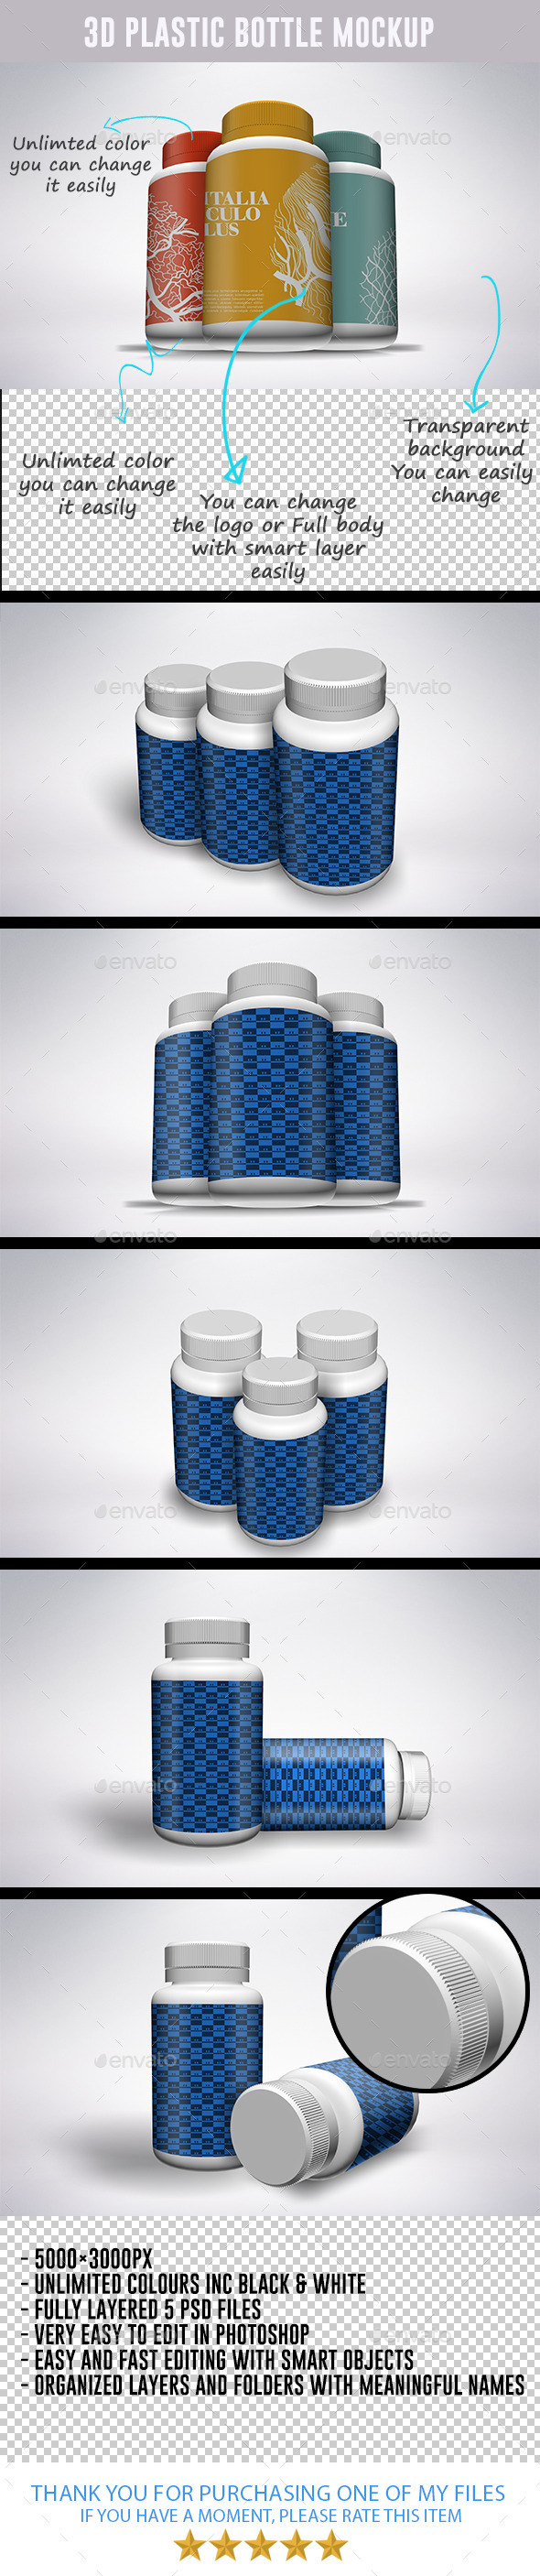 GraphicRiver 3D Vitamin and Pill Bottle Moc-kups 8796449